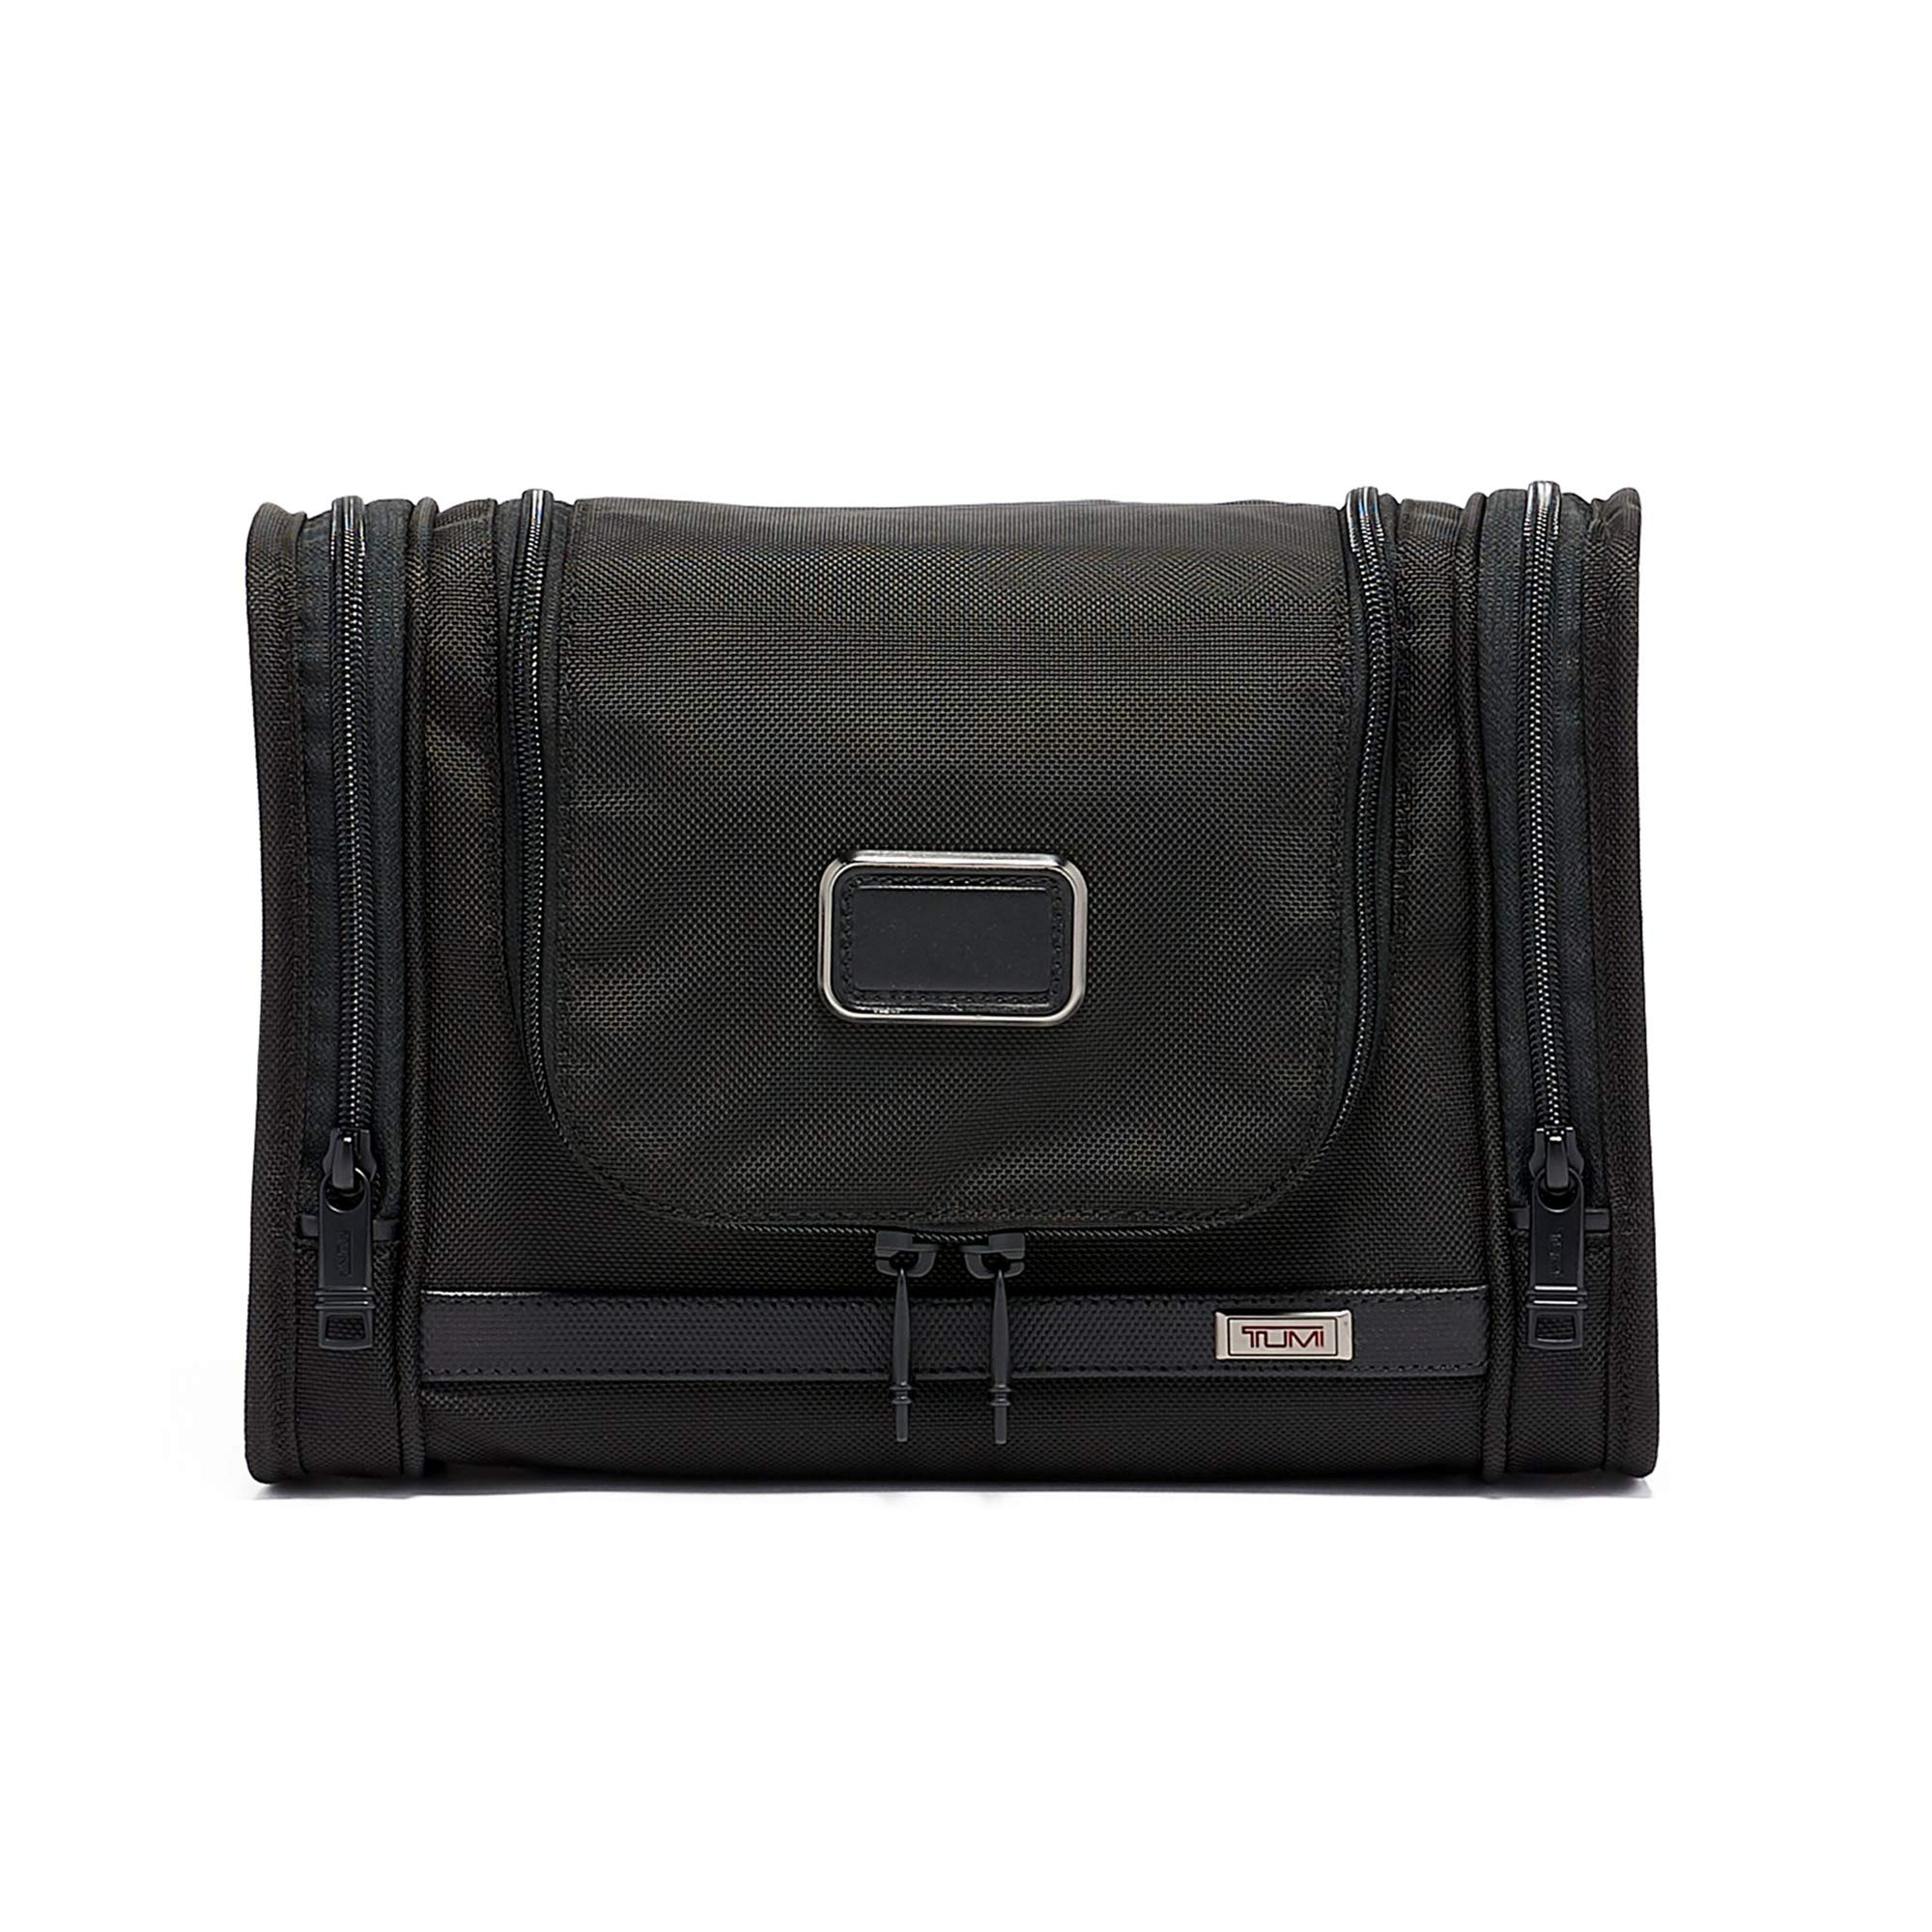 TUMI - Alpha 3 Hanging Travel Kit - Luggage Accessories Toiletry Bag for Men and Women - Black by TUMI